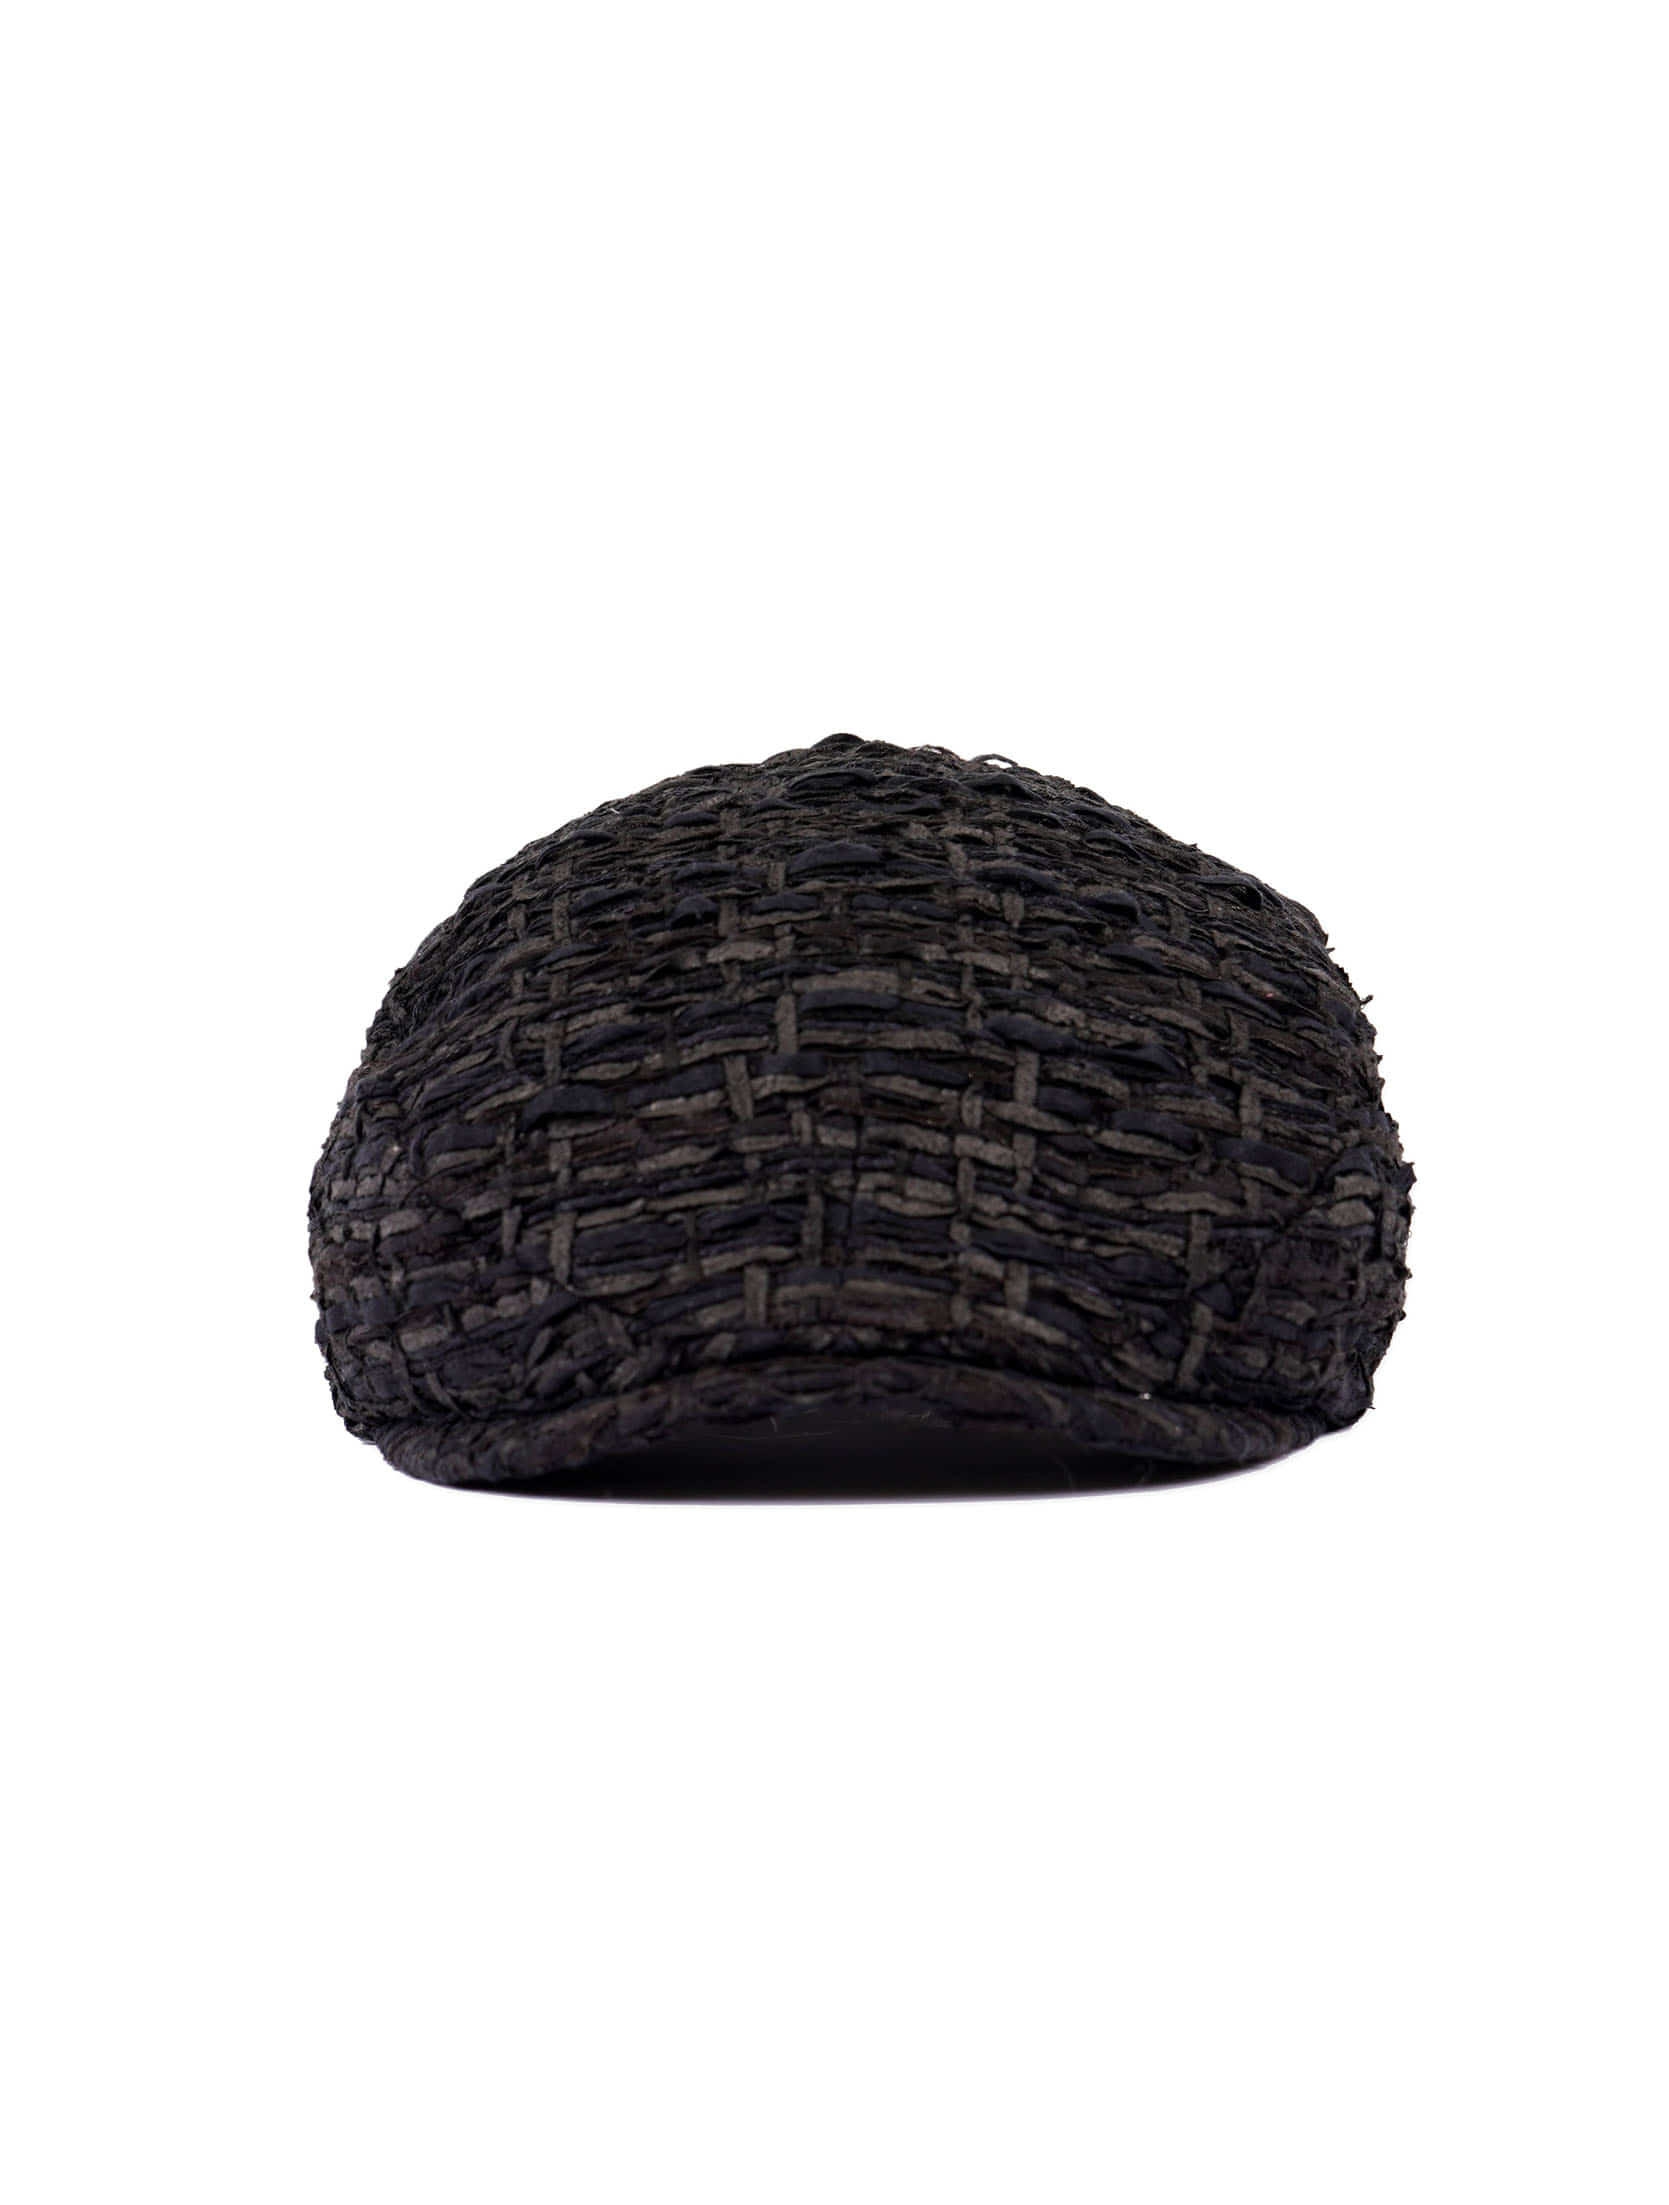 Navy/Charcoal Tweed Hunting Cap